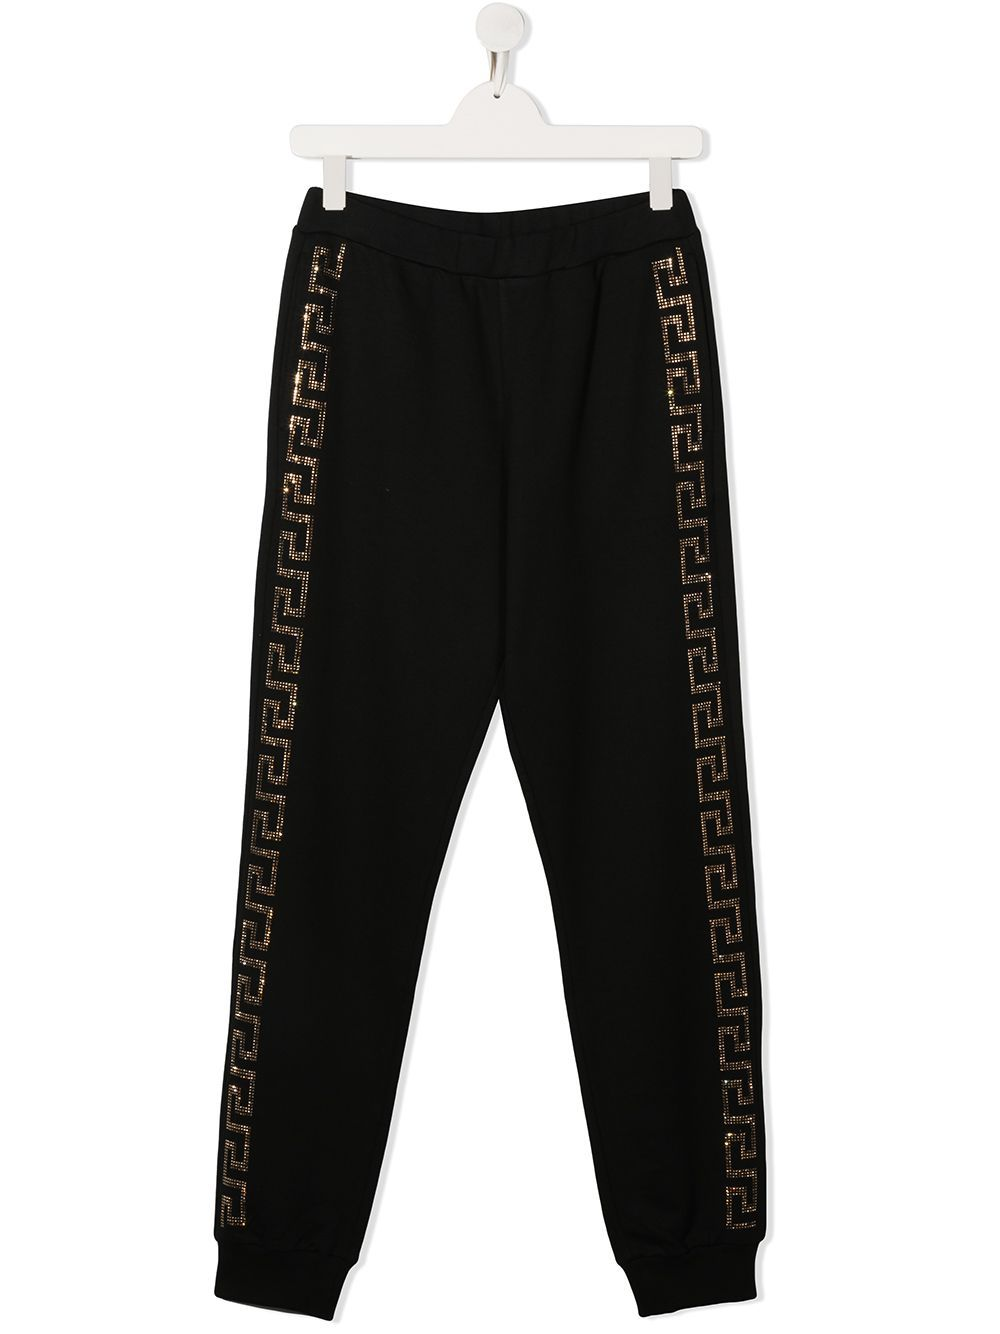 VERSACE KIDS Rhinestone Side Logo Track Pants Black - Maison De Fashion